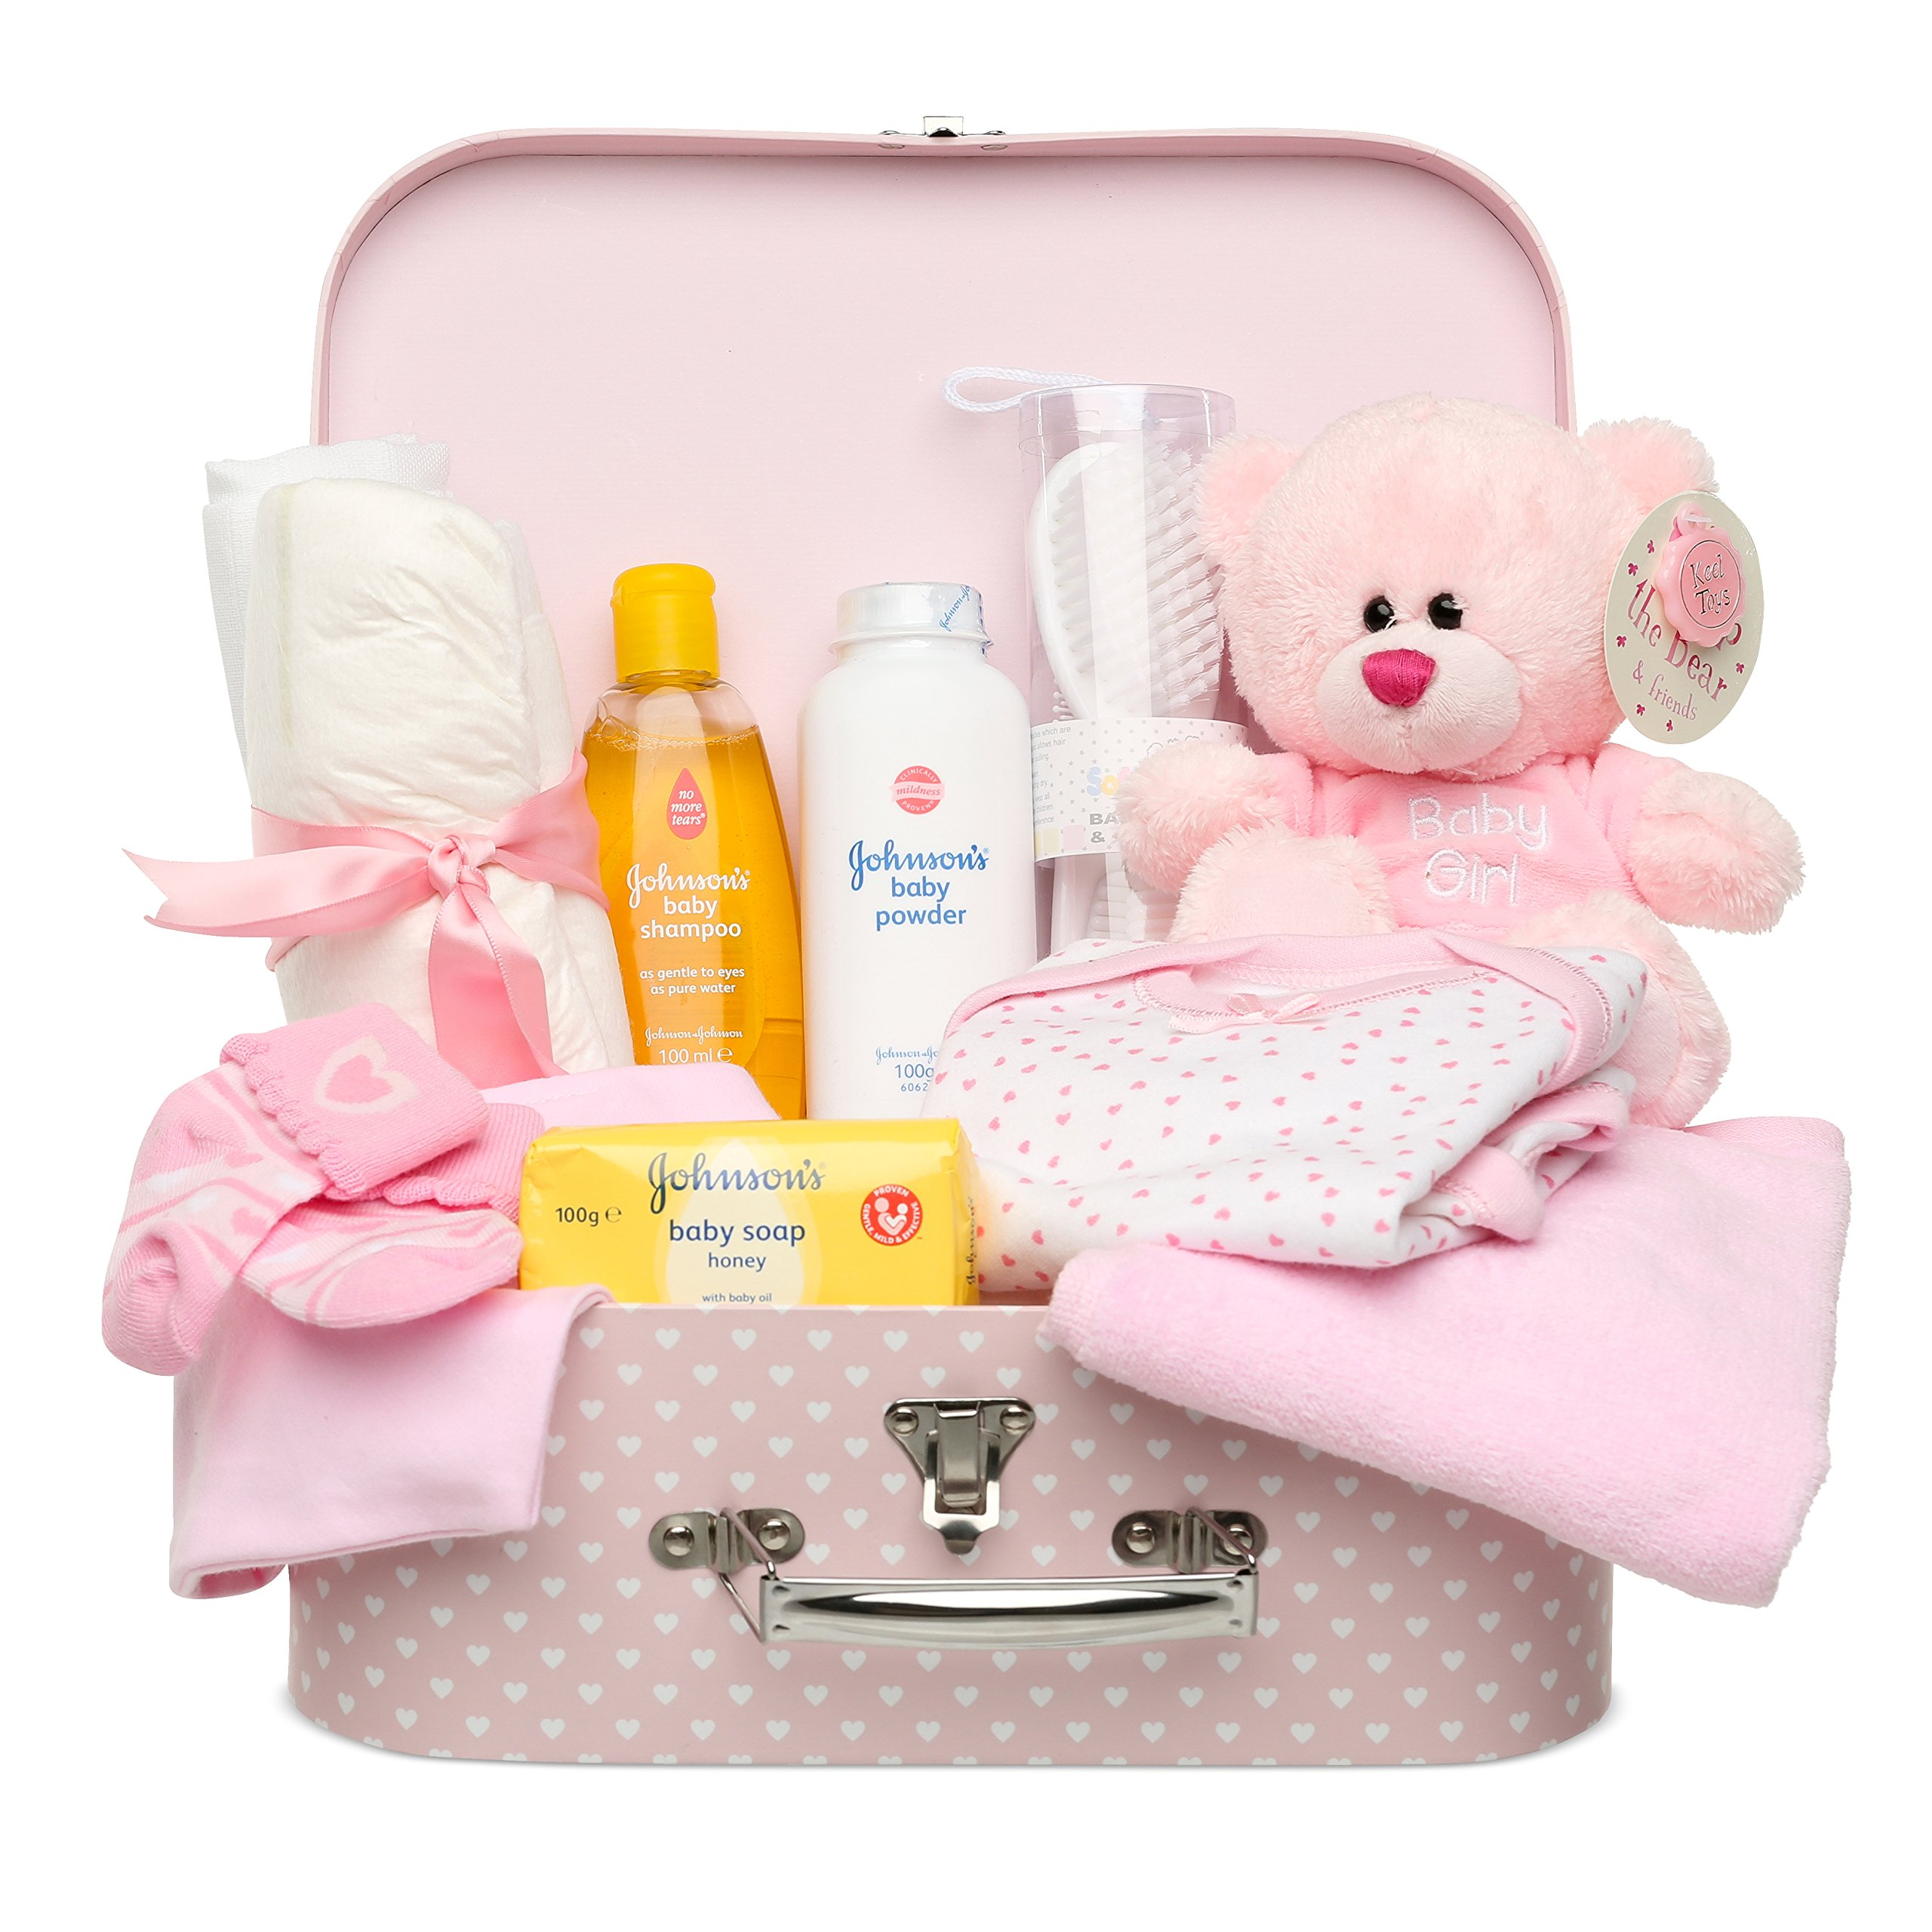 Newborn Baby Gift Set - Keepsake Box in Pink with Baby Clothes, Teddy Bear and Gifts for a New Baby Girl